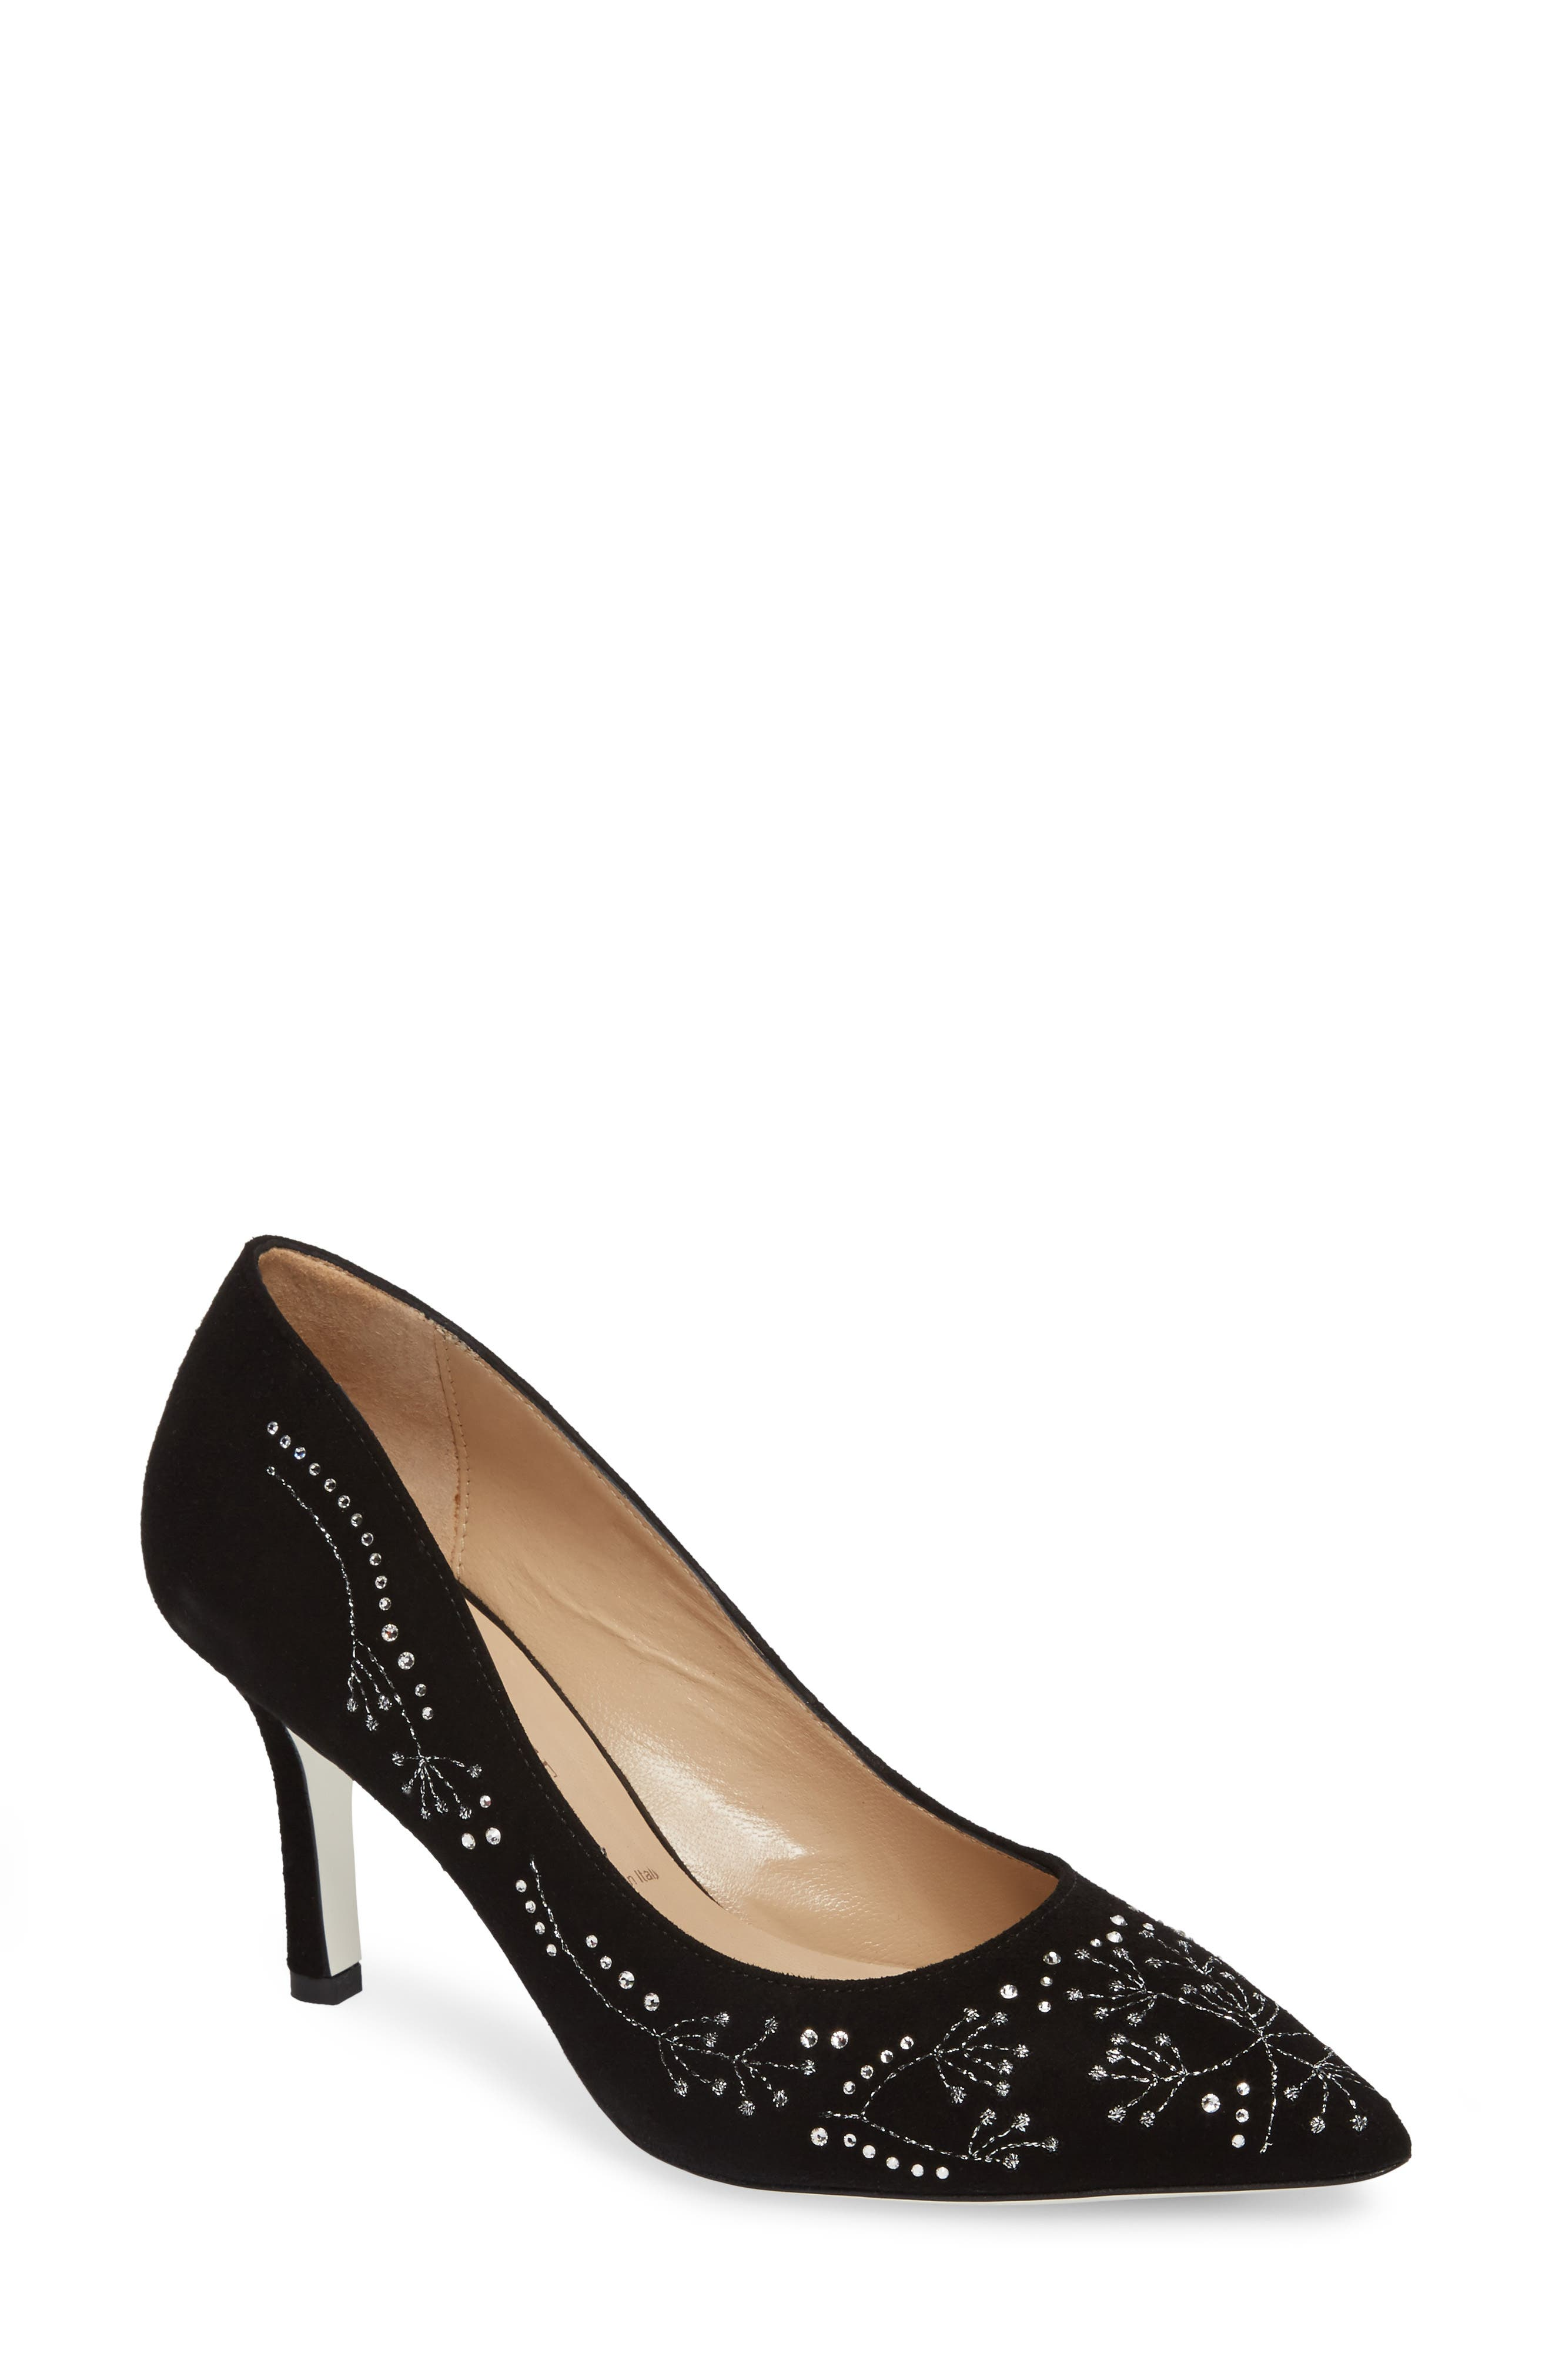 Carla Crystal Embellished Pump,                             Main thumbnail 1, color,                             Onyx Suede